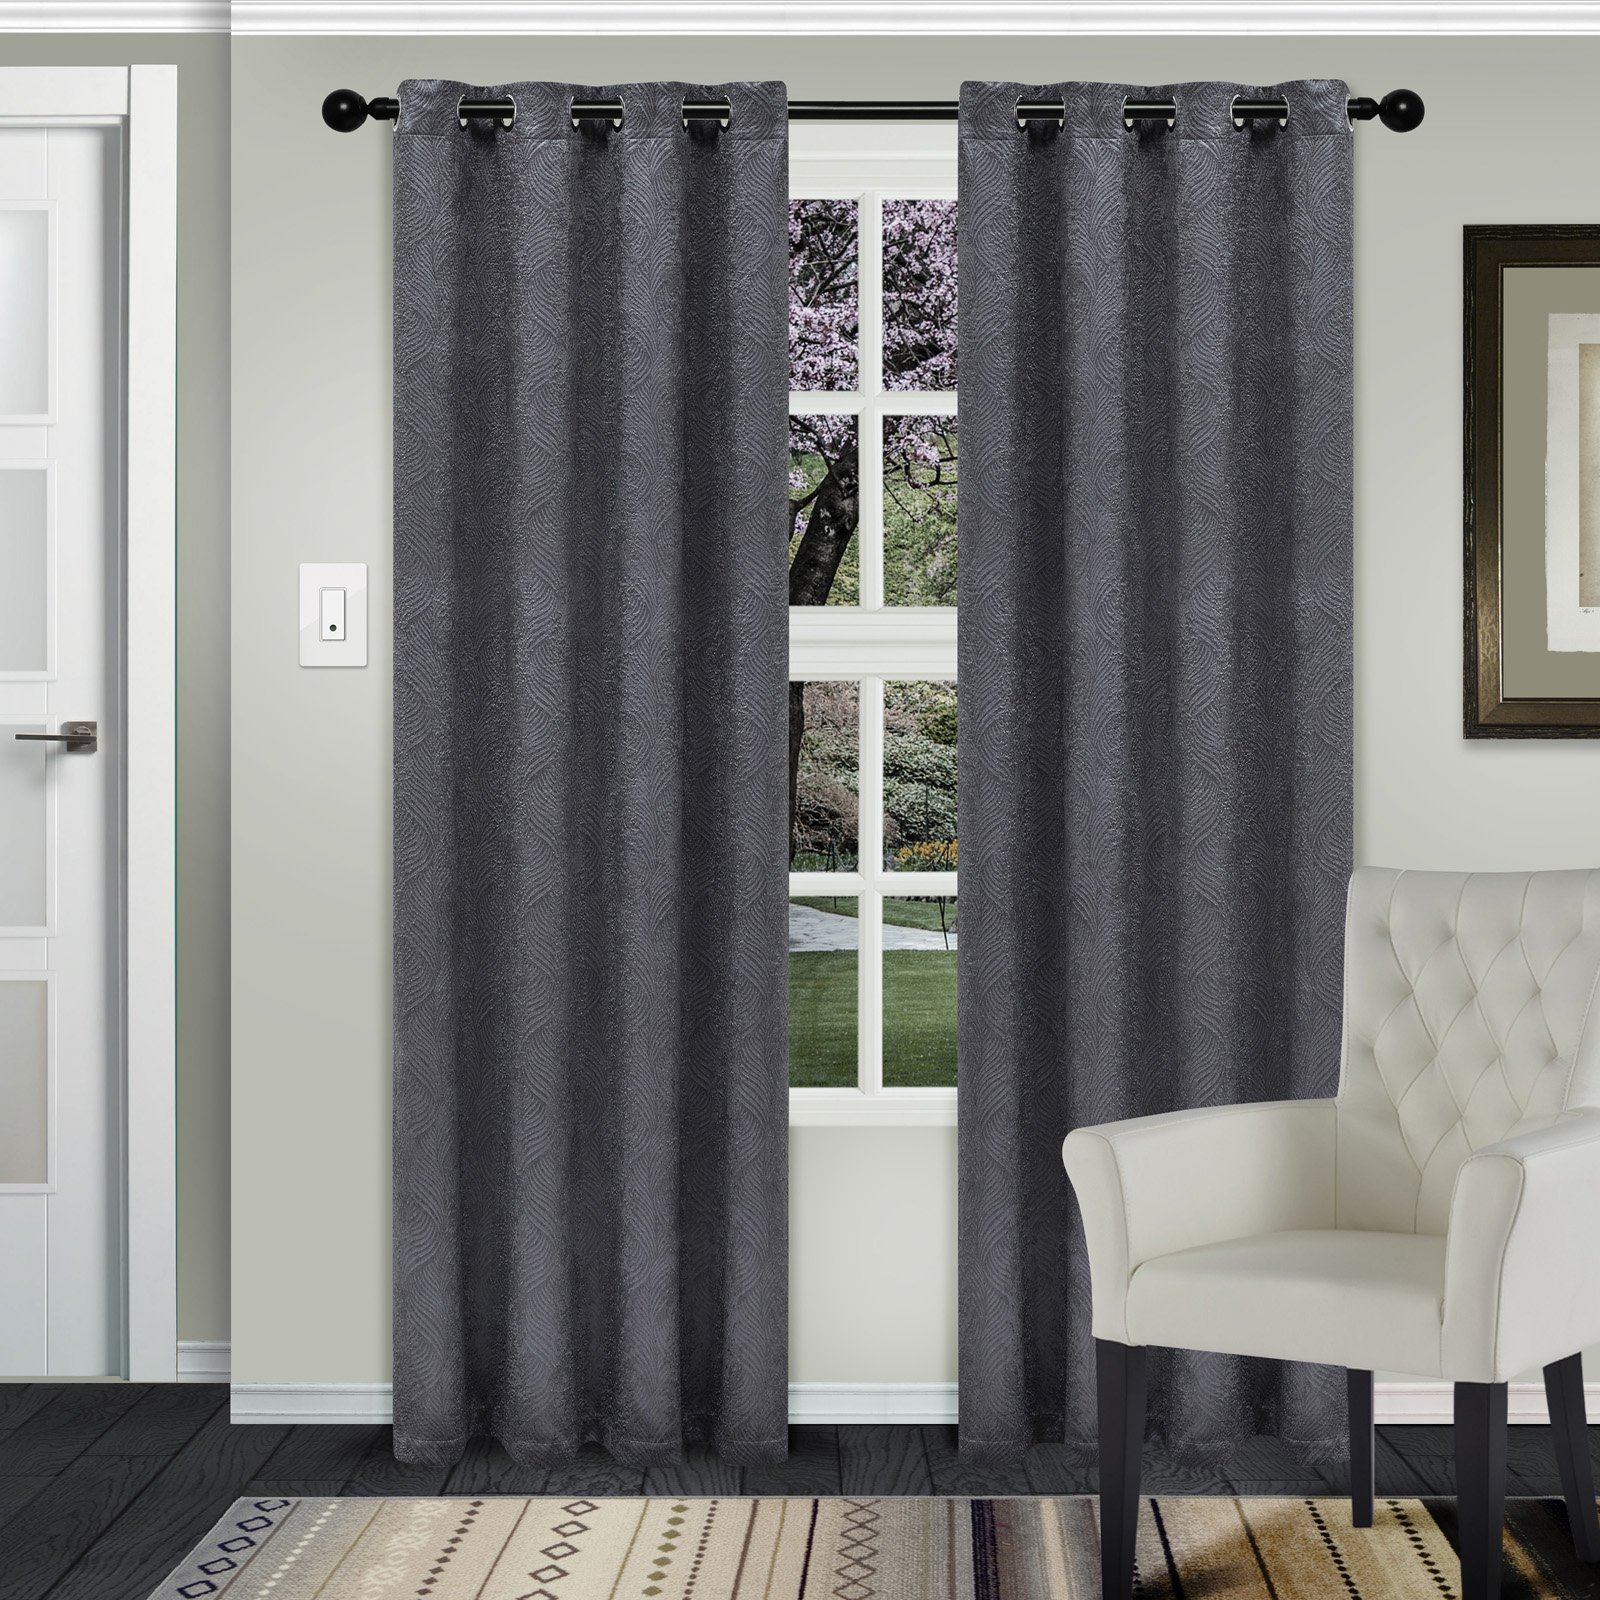 Superior Waverly Blackout 2 Panel Curtains Silver In 2019 Regarding Superior Leaves Insulated Thermal Blackout Grommet Curtain Panel Pairs (View 4 of 30)